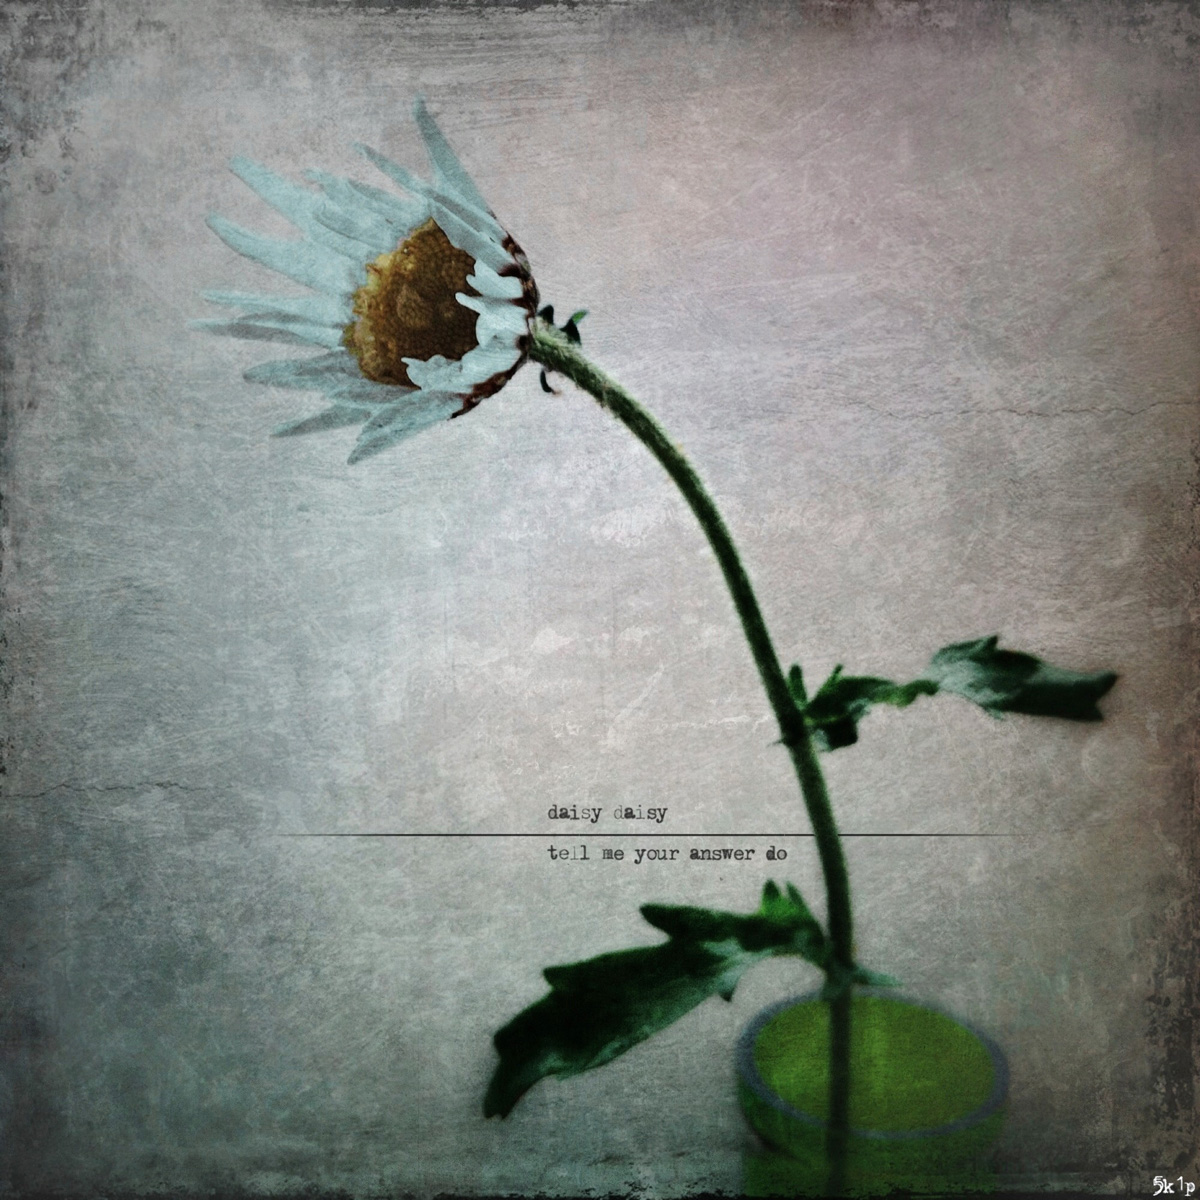 iPhoneography - daisy